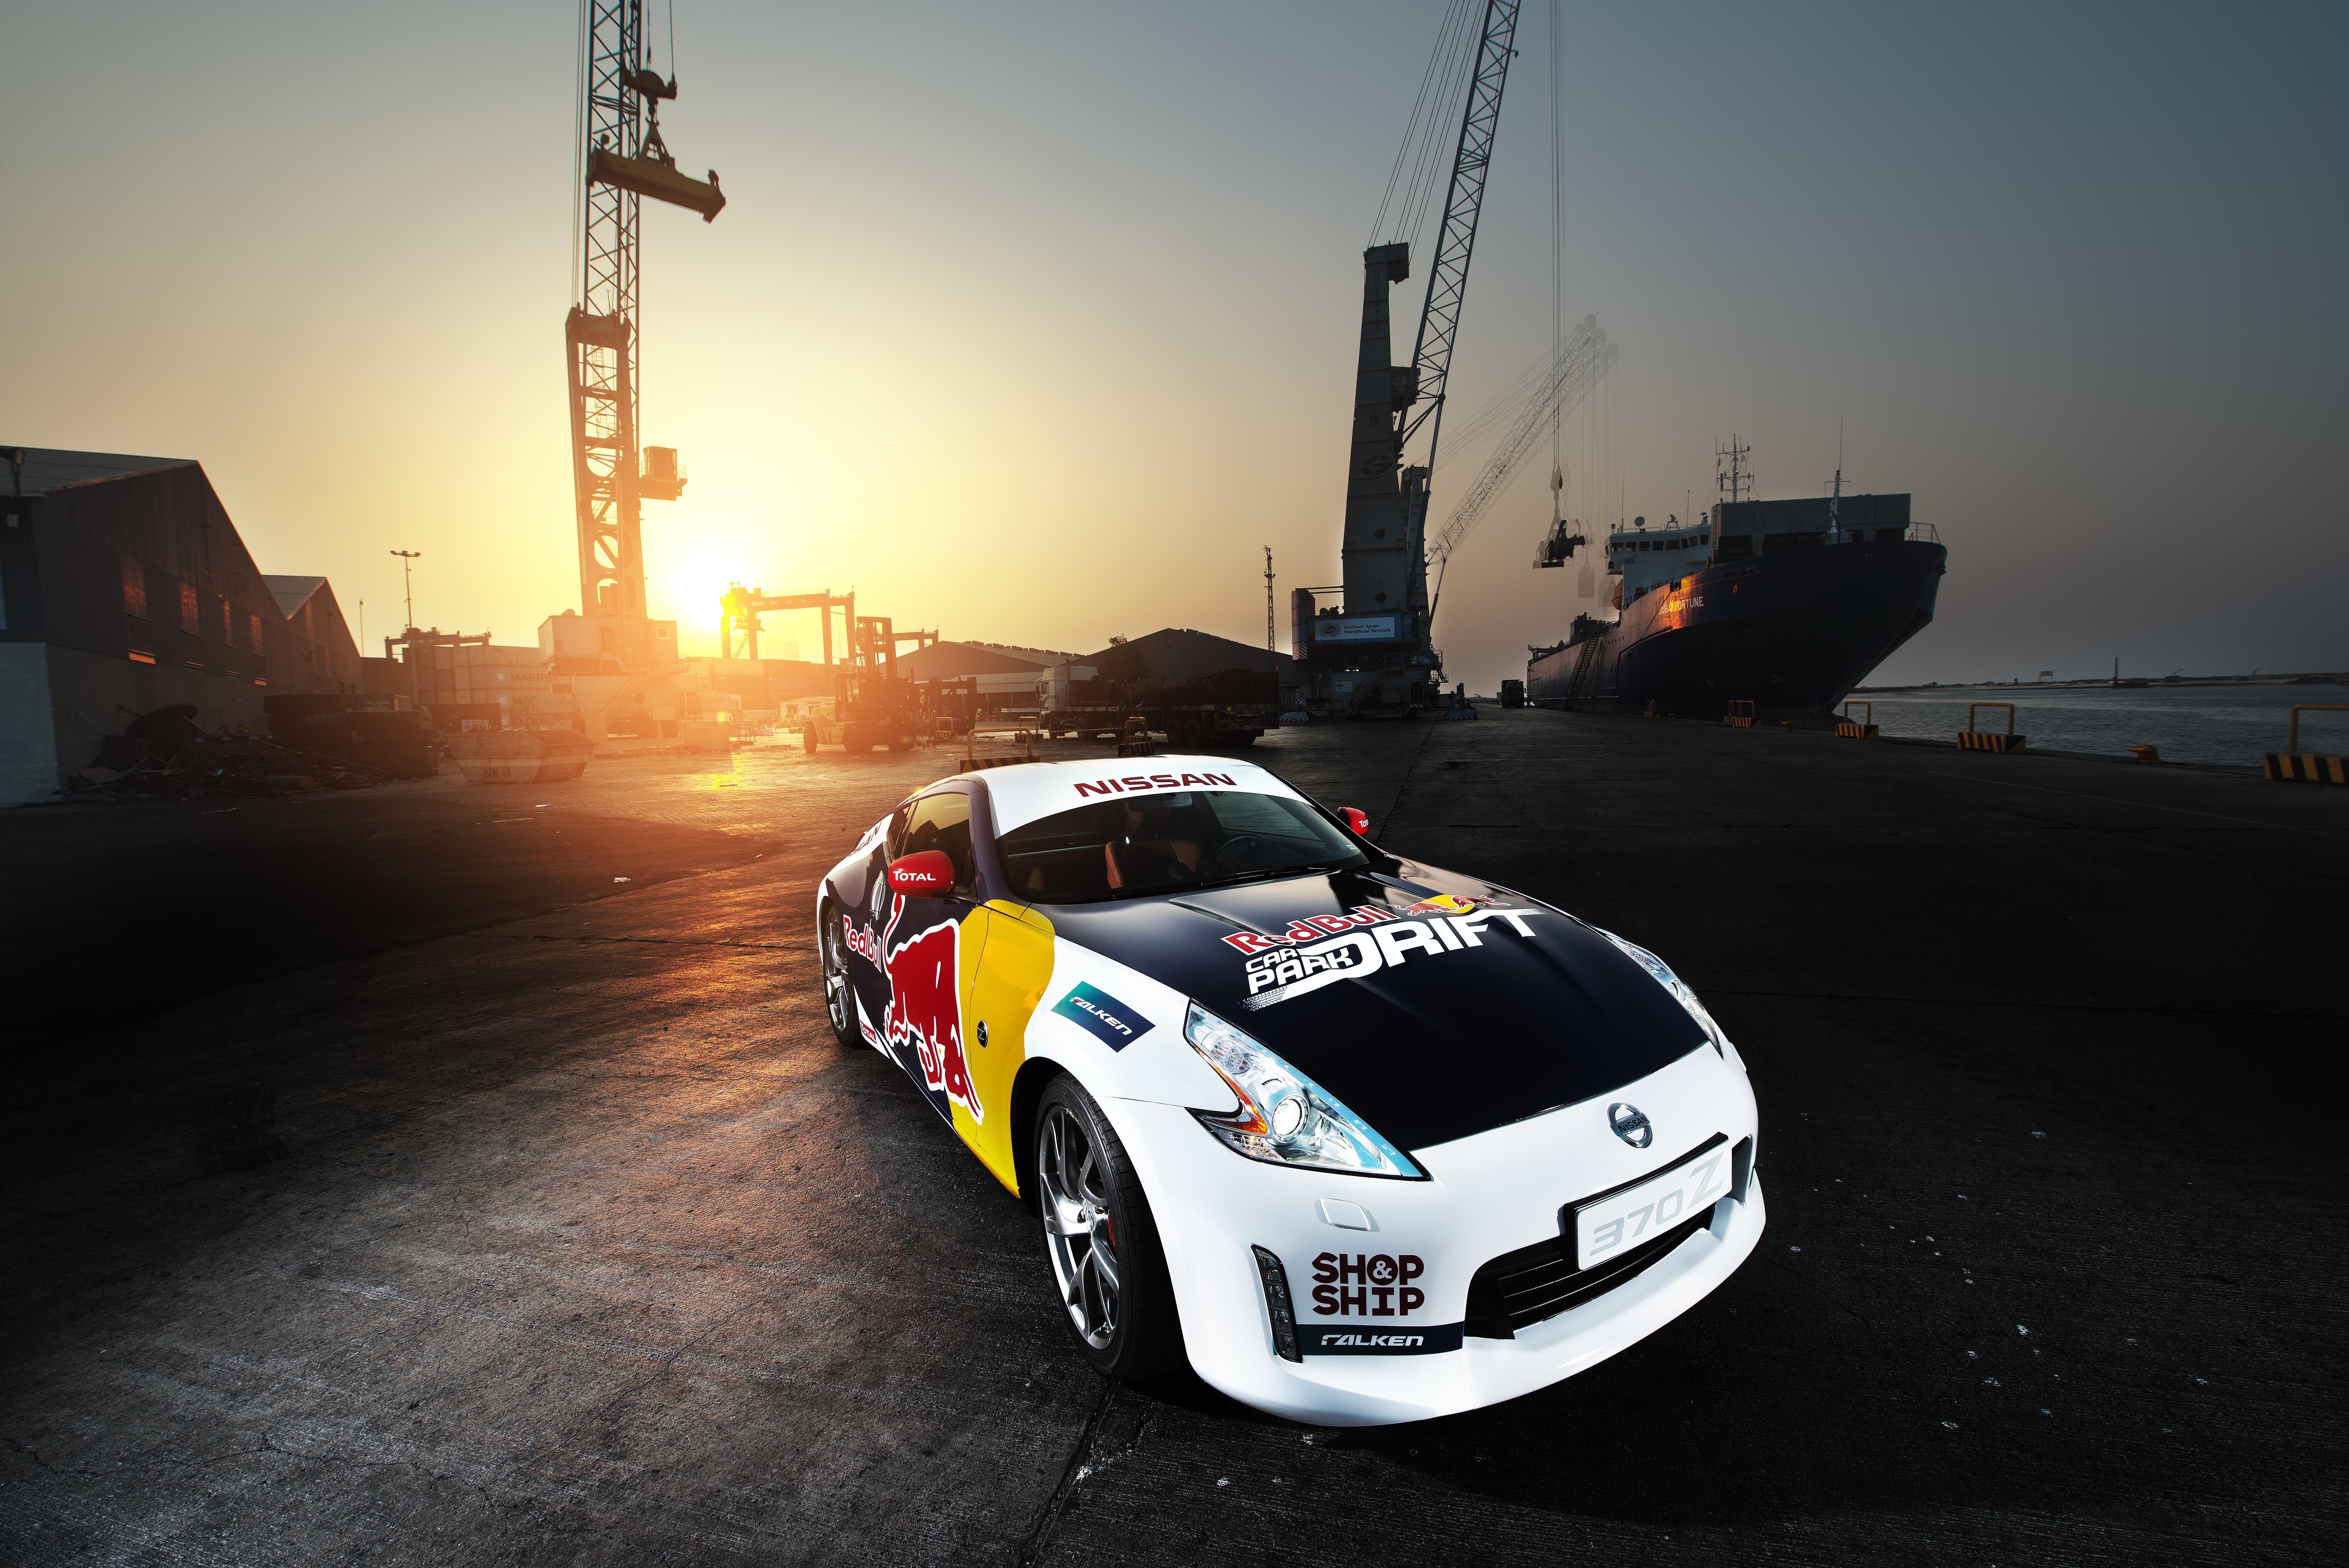 Drifters unveiled for Red Bull Car Park Drift Final 2016 in Oman